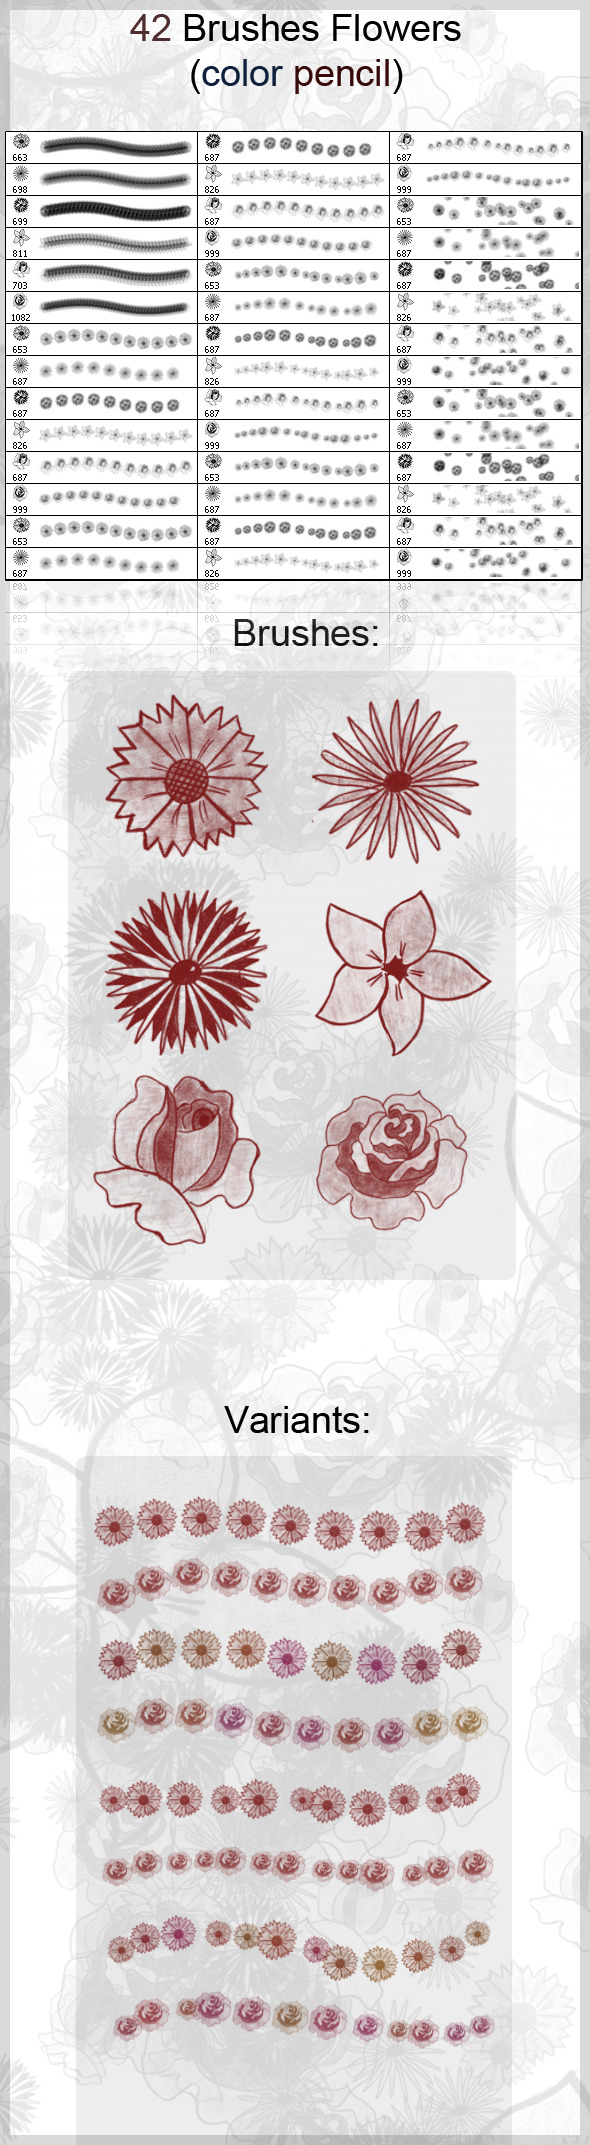 42 Brushes Flowers (Color Pencil) - Flourishes Brushes